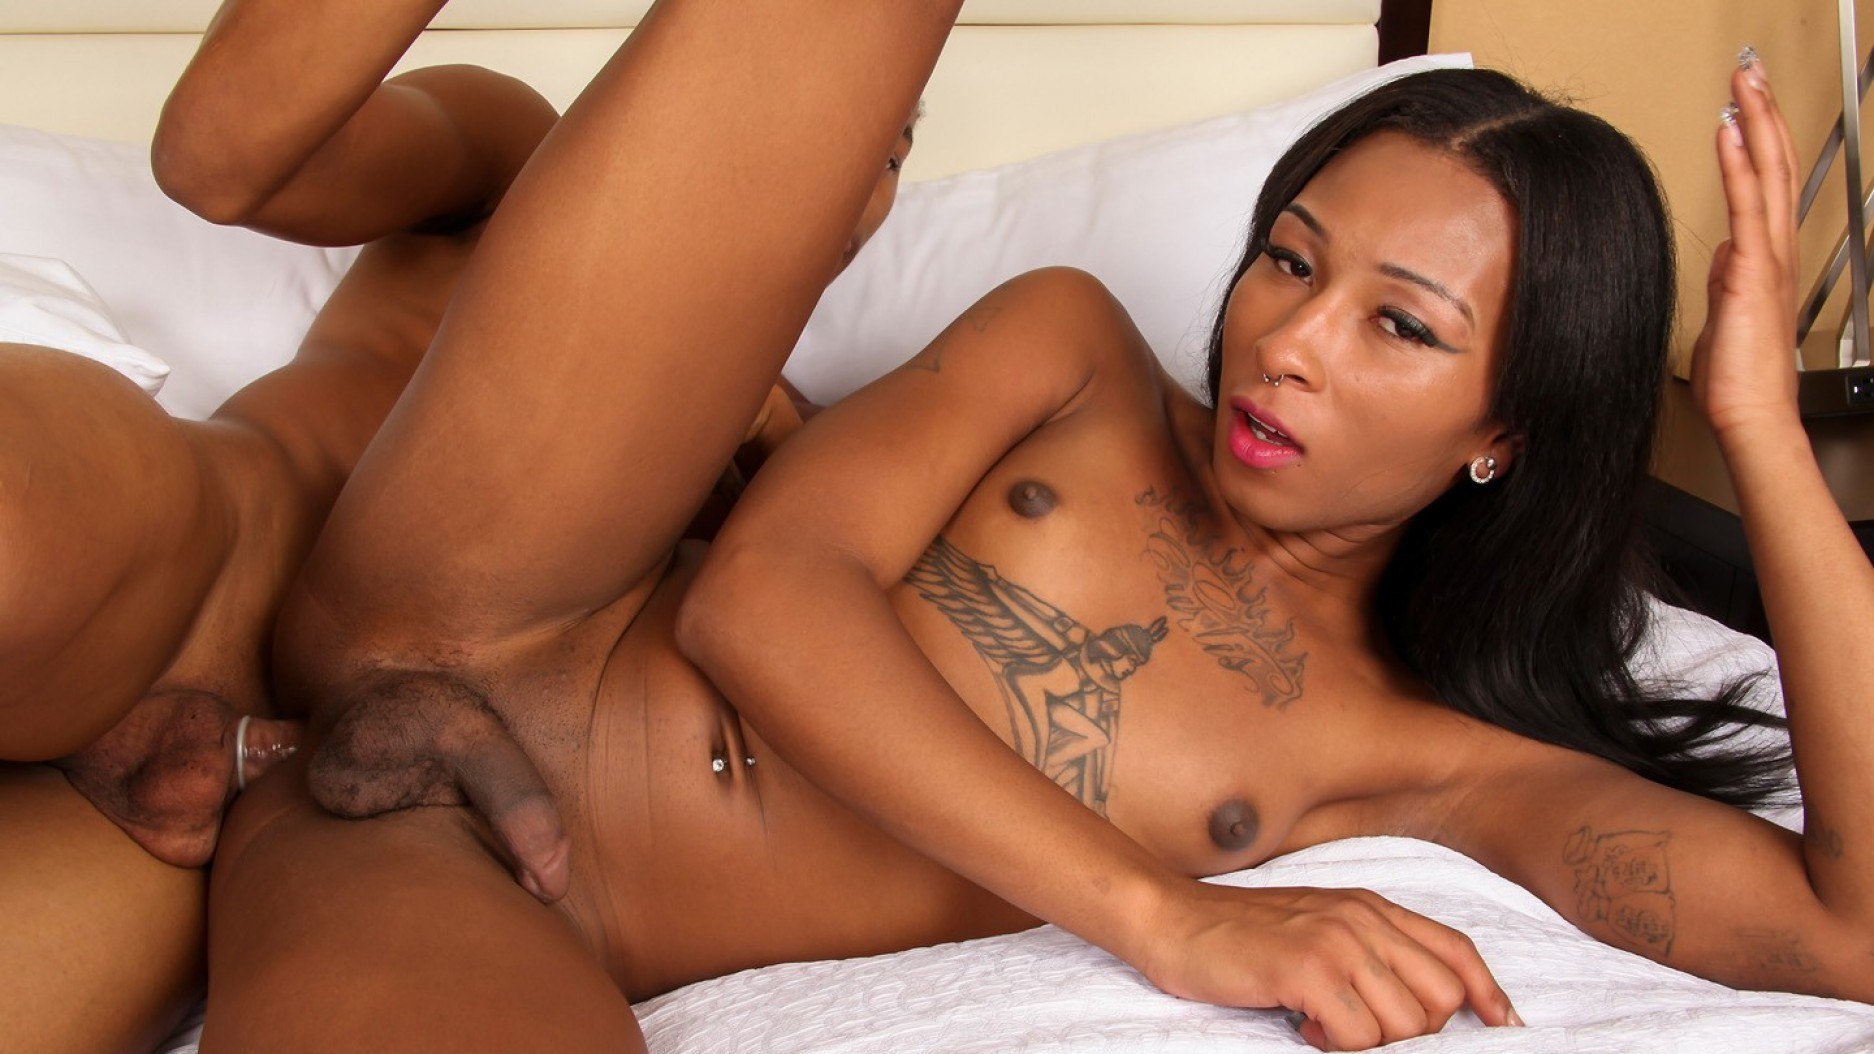 Ebony shemale sex video